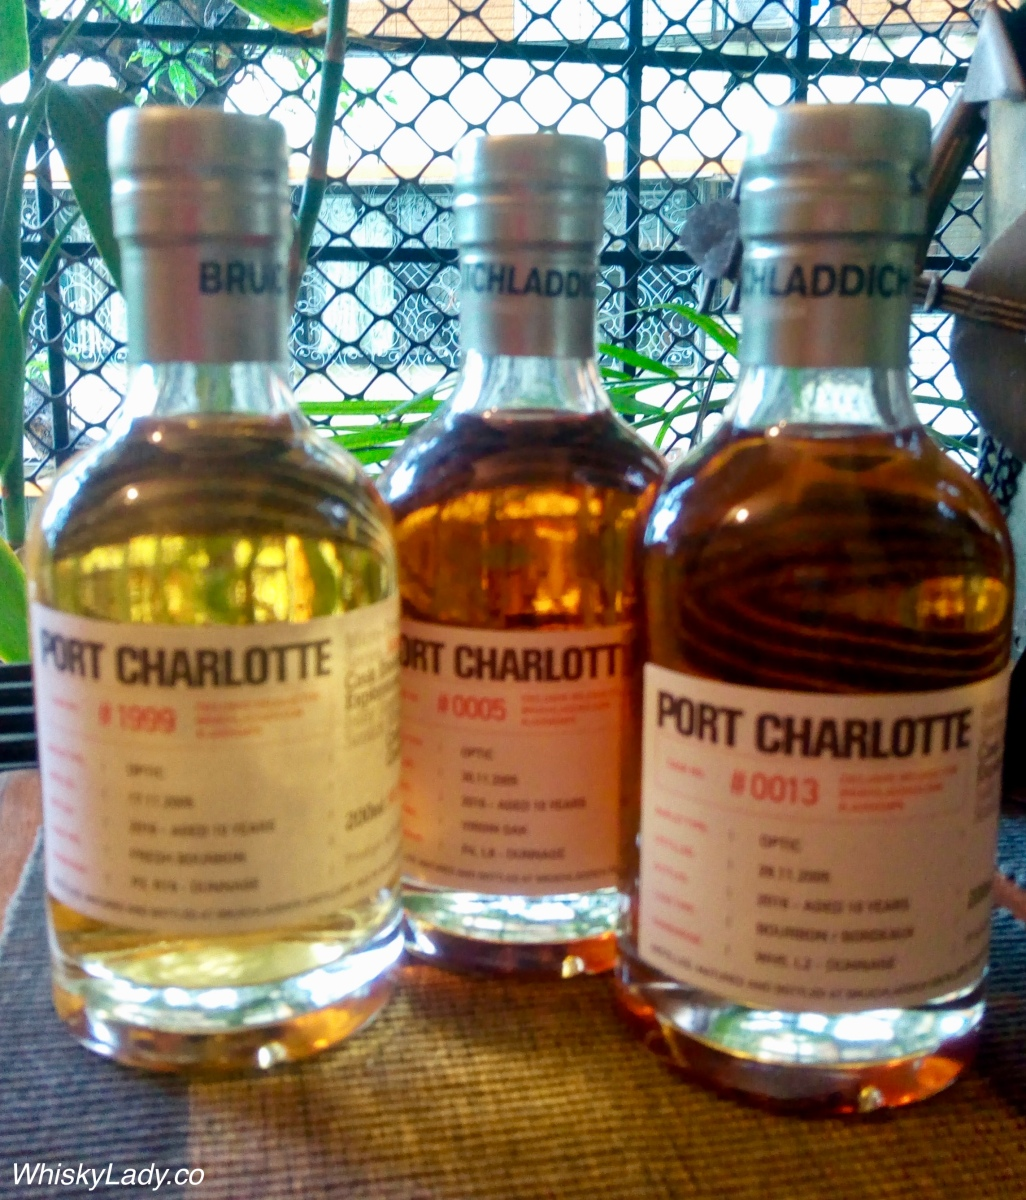 Bruichladdich Port Charlotte MP5